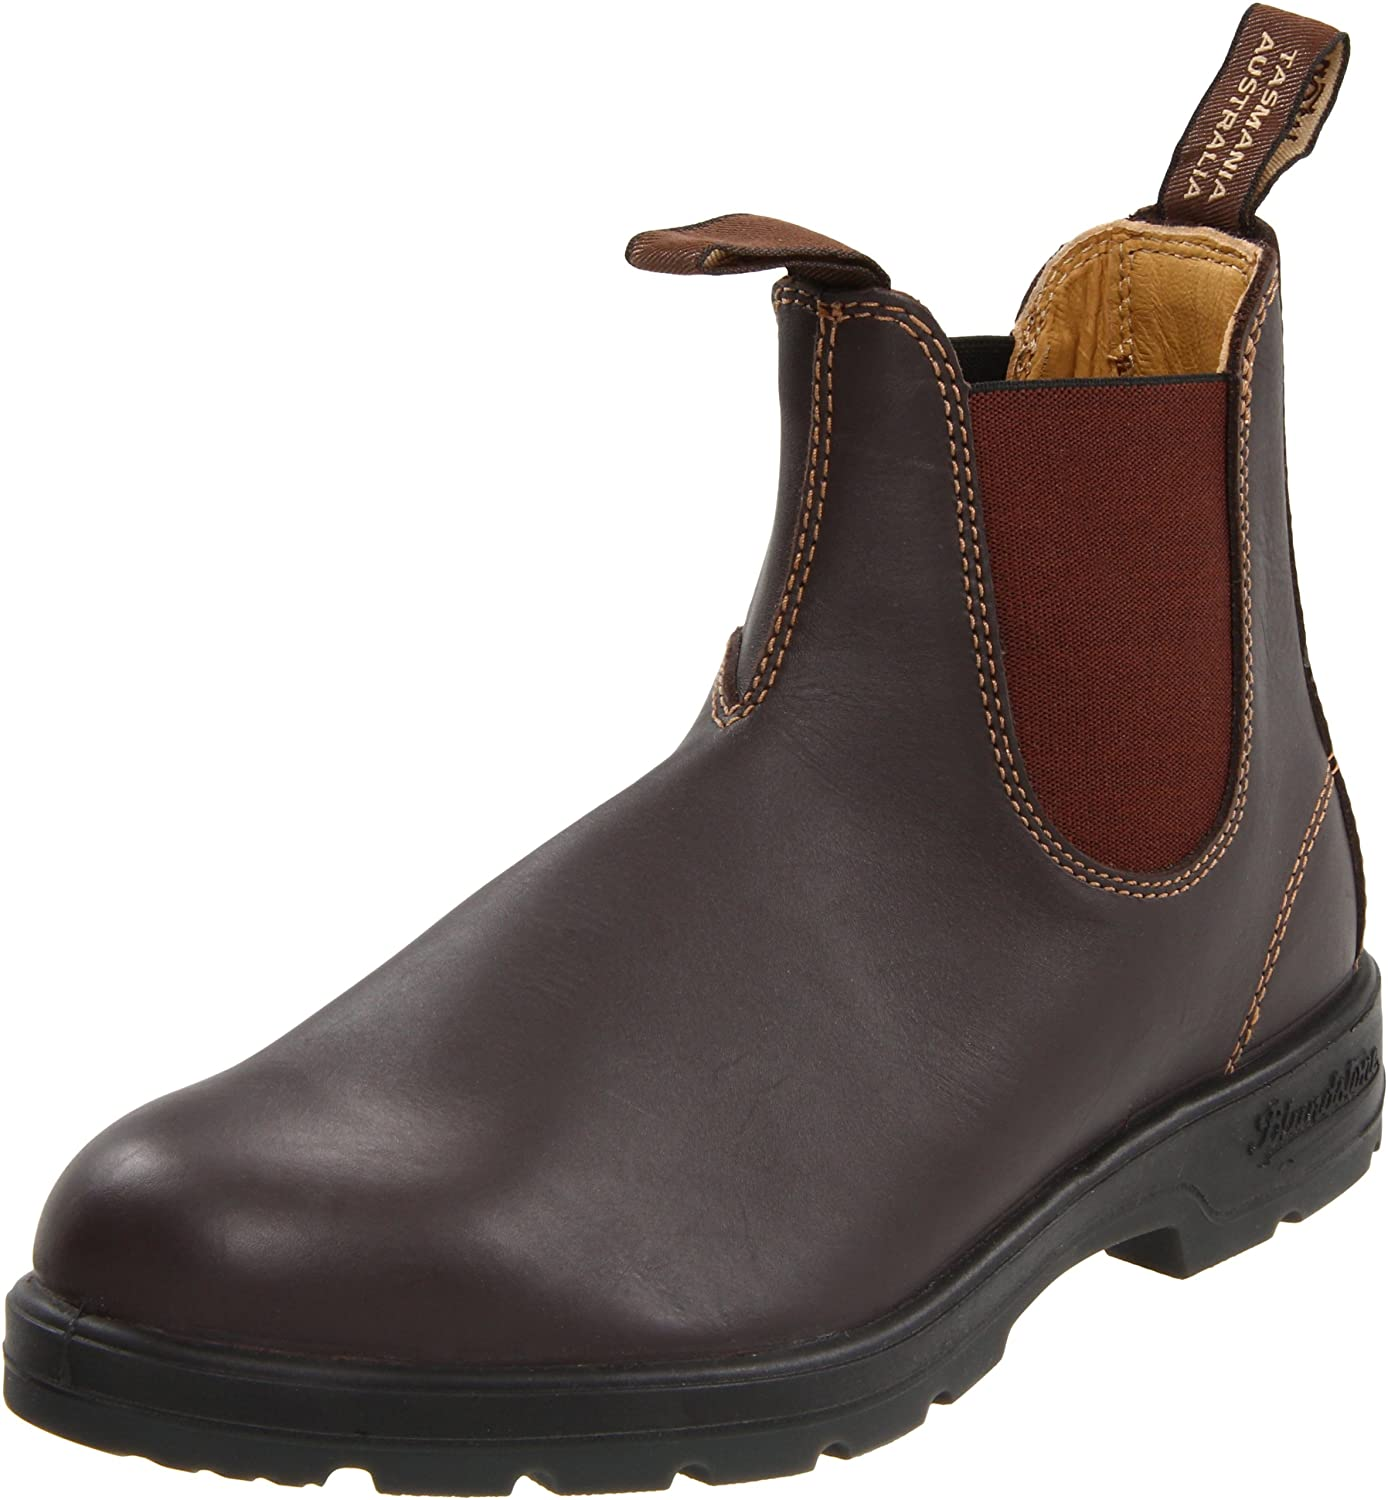 Mens Slip On Work Boots